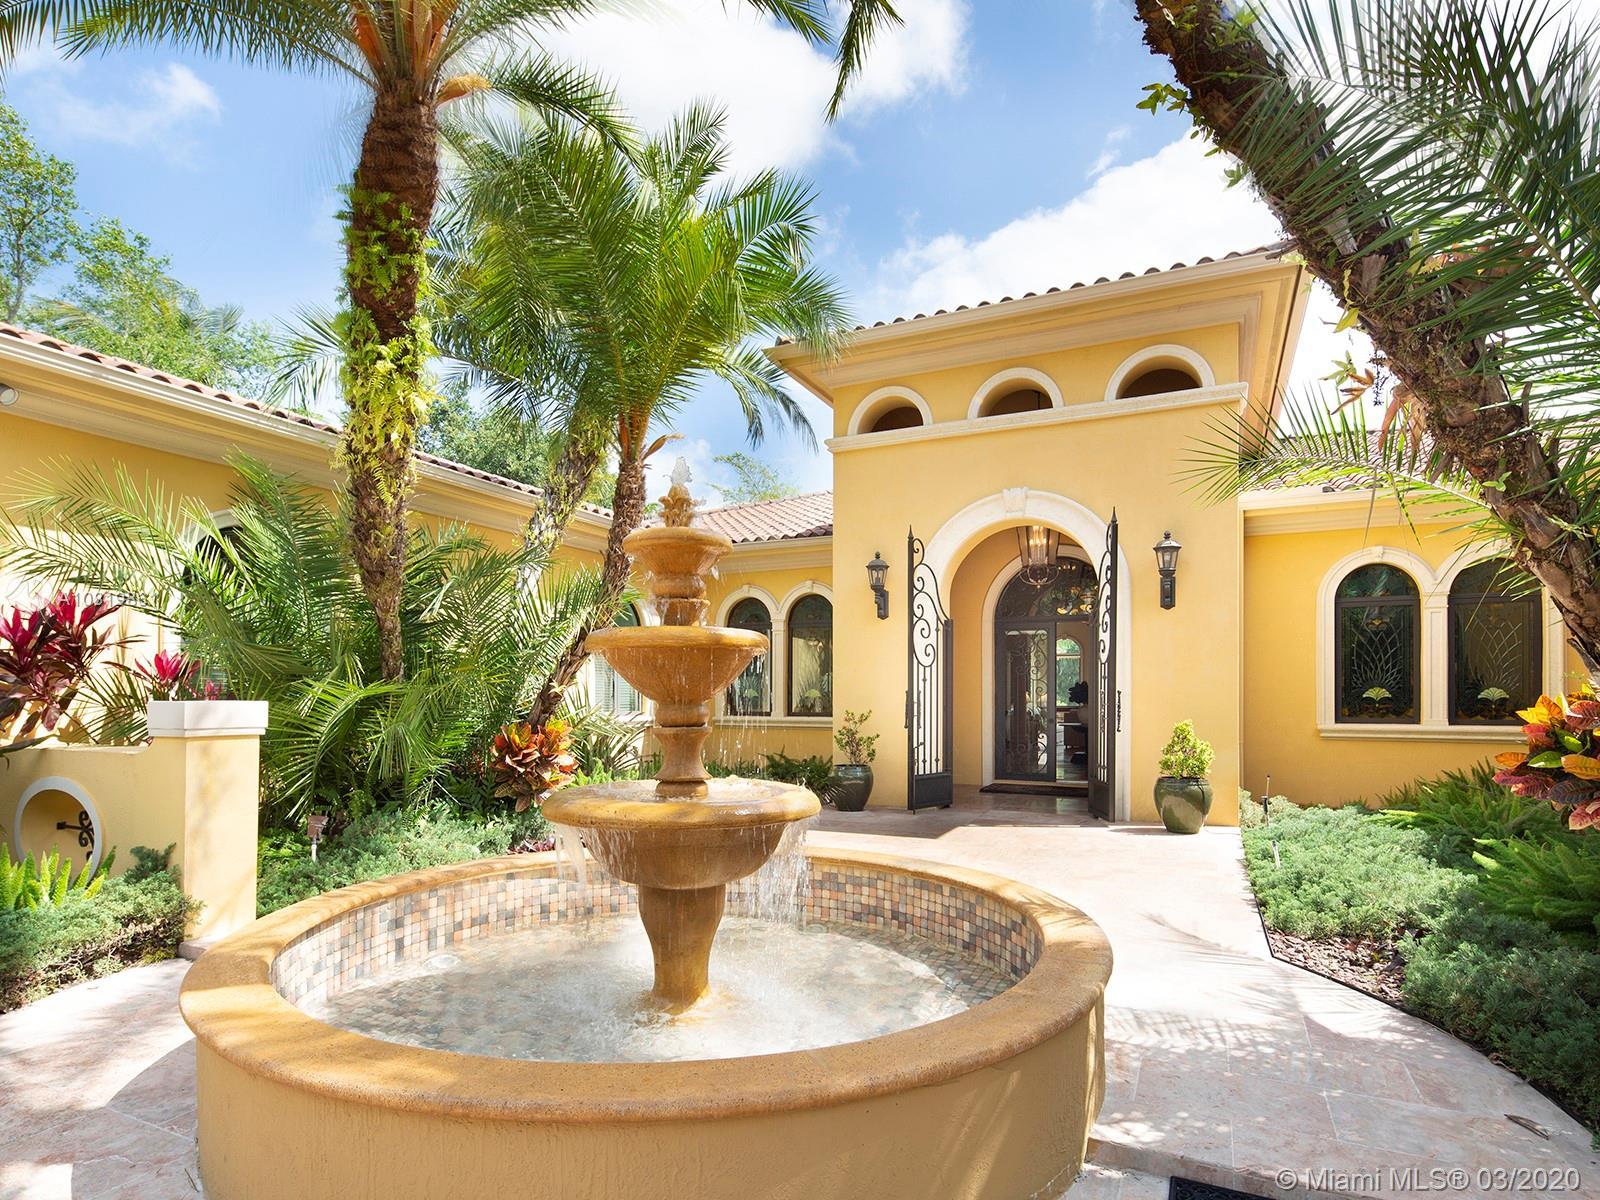 9005 SW 68th Ave, Pinecrest, Florida 33156, 6 Bedrooms Bedrooms, ,8 BathroomsBathrooms,Residential,For Sale,9005 SW 68th Ave,A10819861